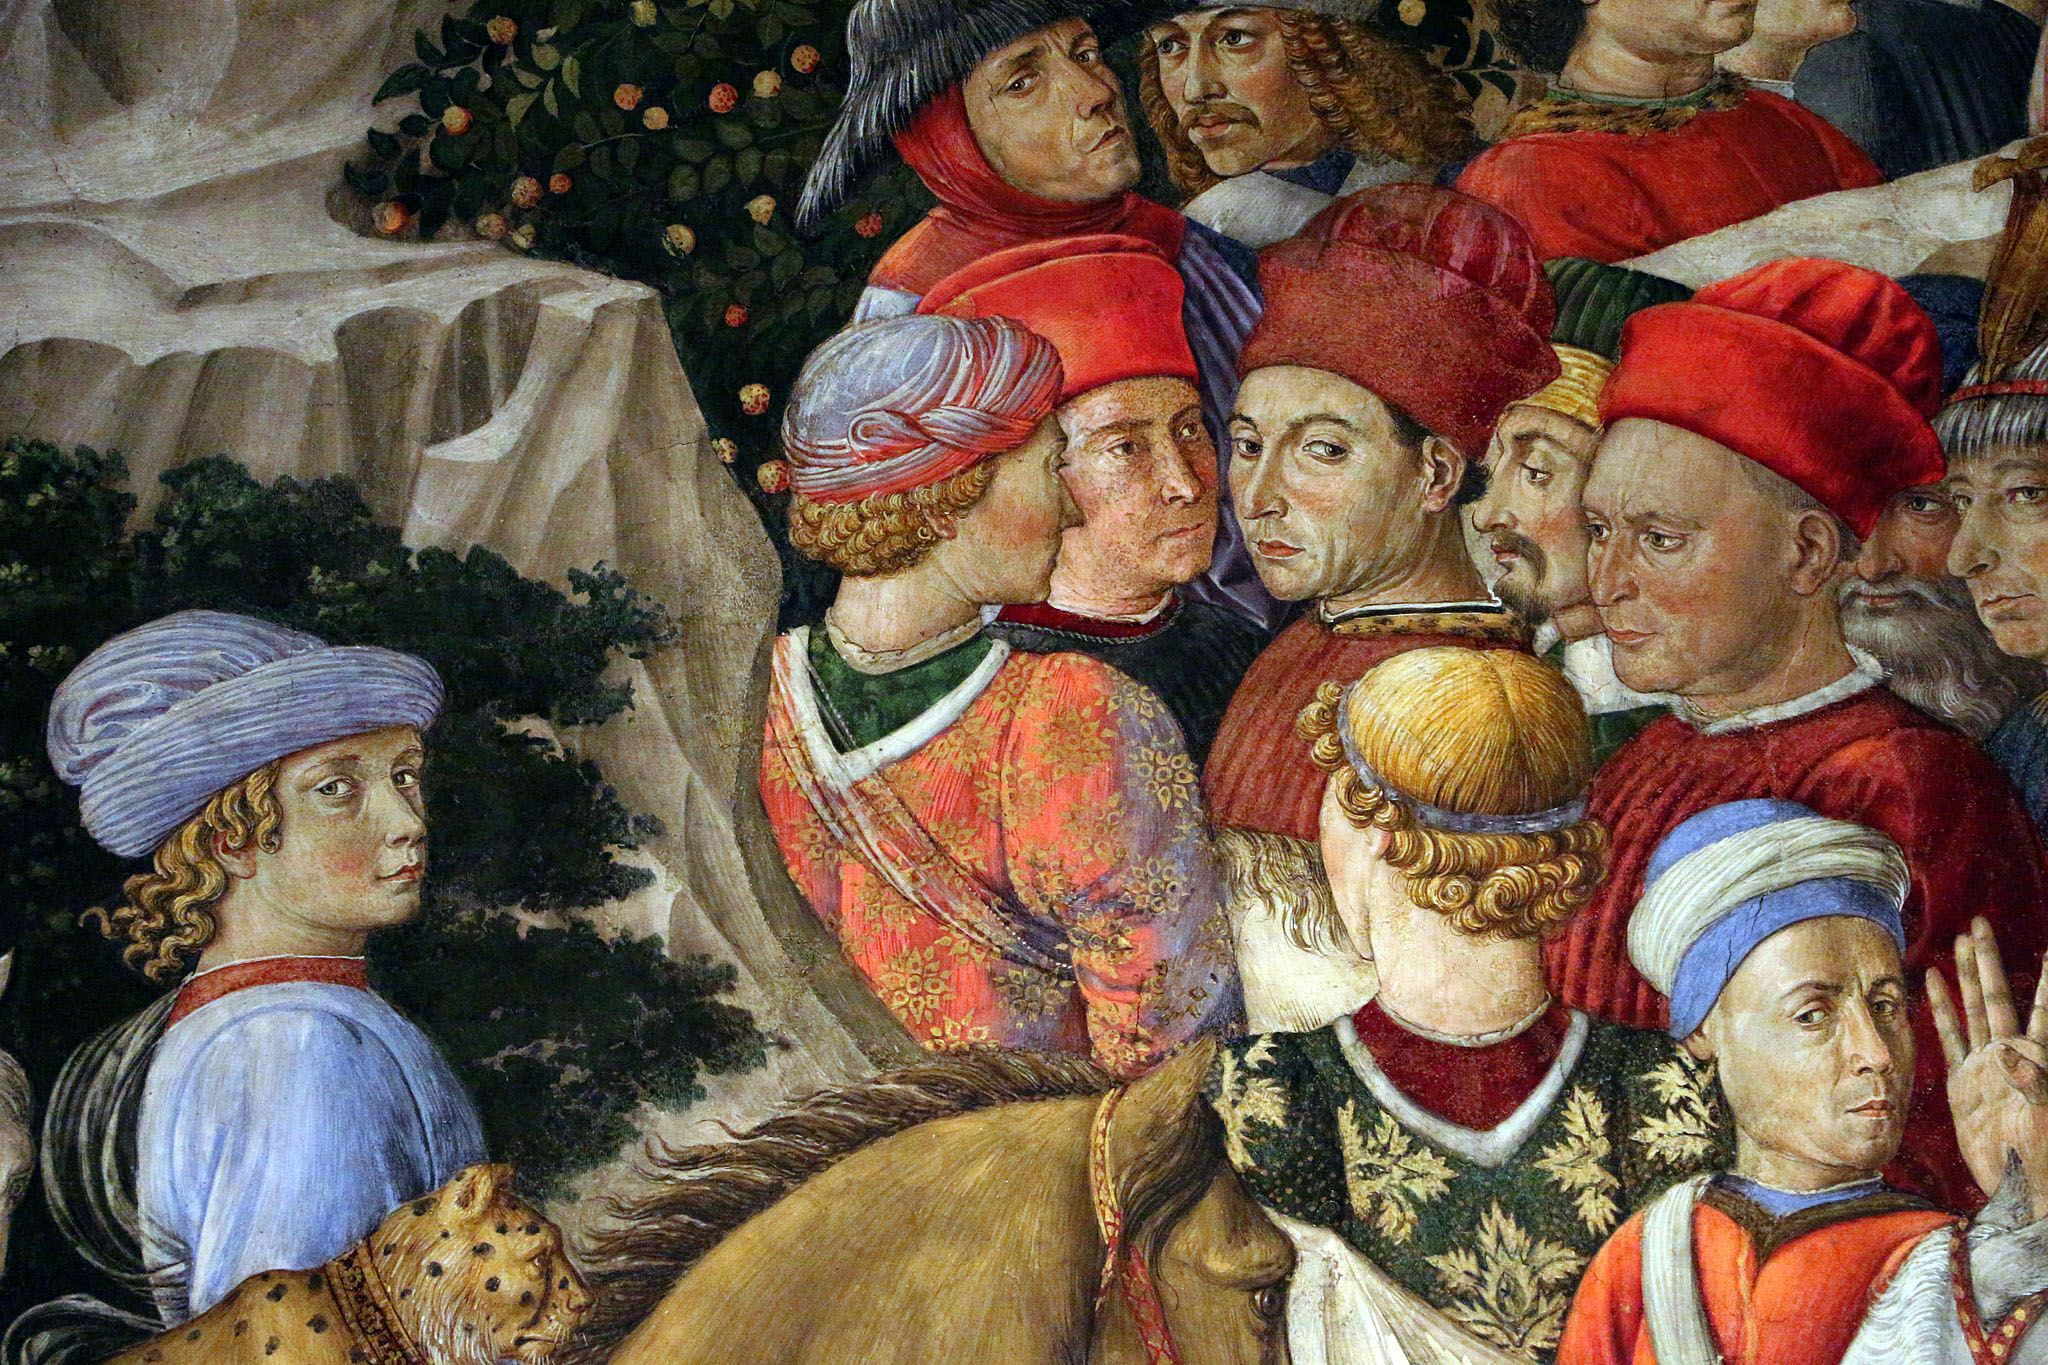 A detail of the famous fresco by Benozzo Gozzoli in the Palazzo Medici Riccardi in Florence portrays many fine garments worn in the Renaissance by aristocrats.